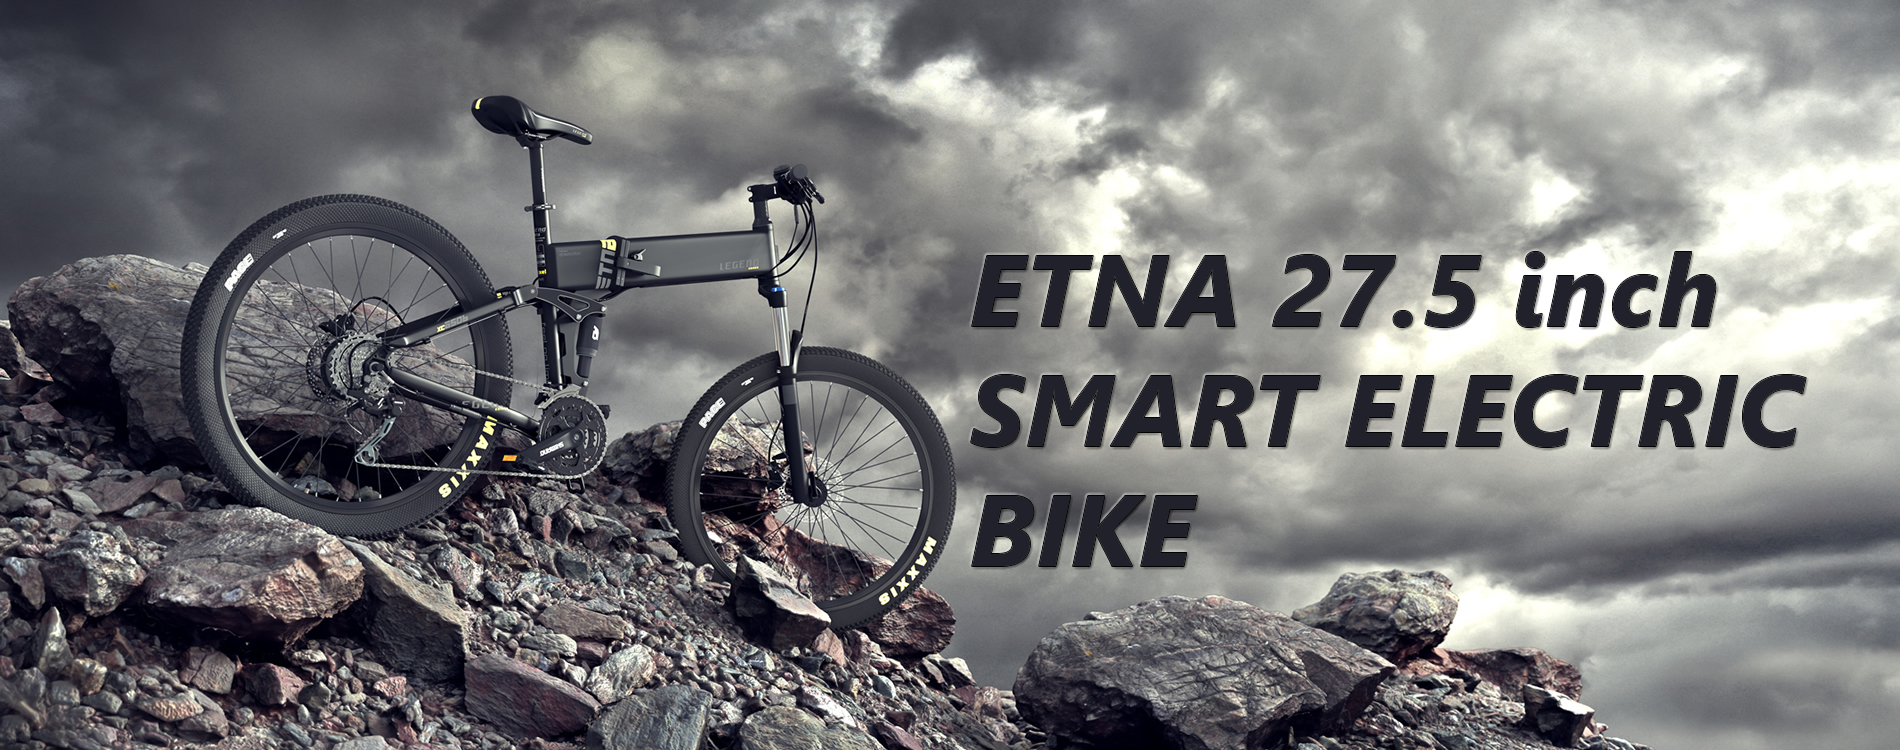 Etna Electric Bike 27.5 inch